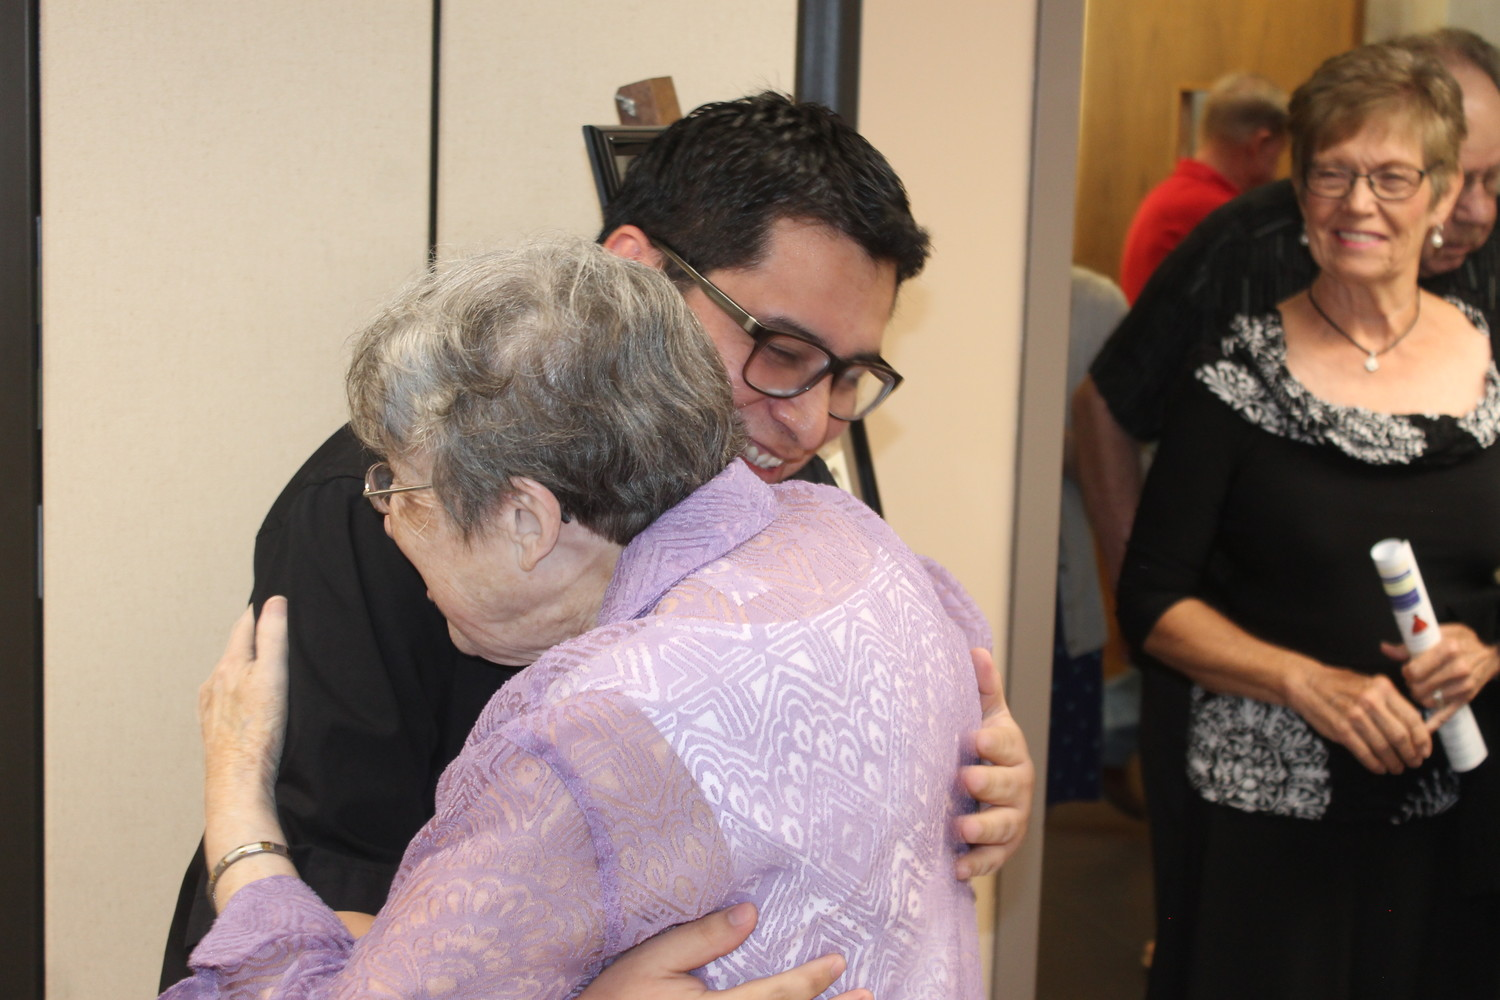 Sister Laura Magowan of the Sisters of Charity of the Incarnate Word greets Father César Anicama at a farewell reception for him at Immaculate Conception parish in Jefferson City.